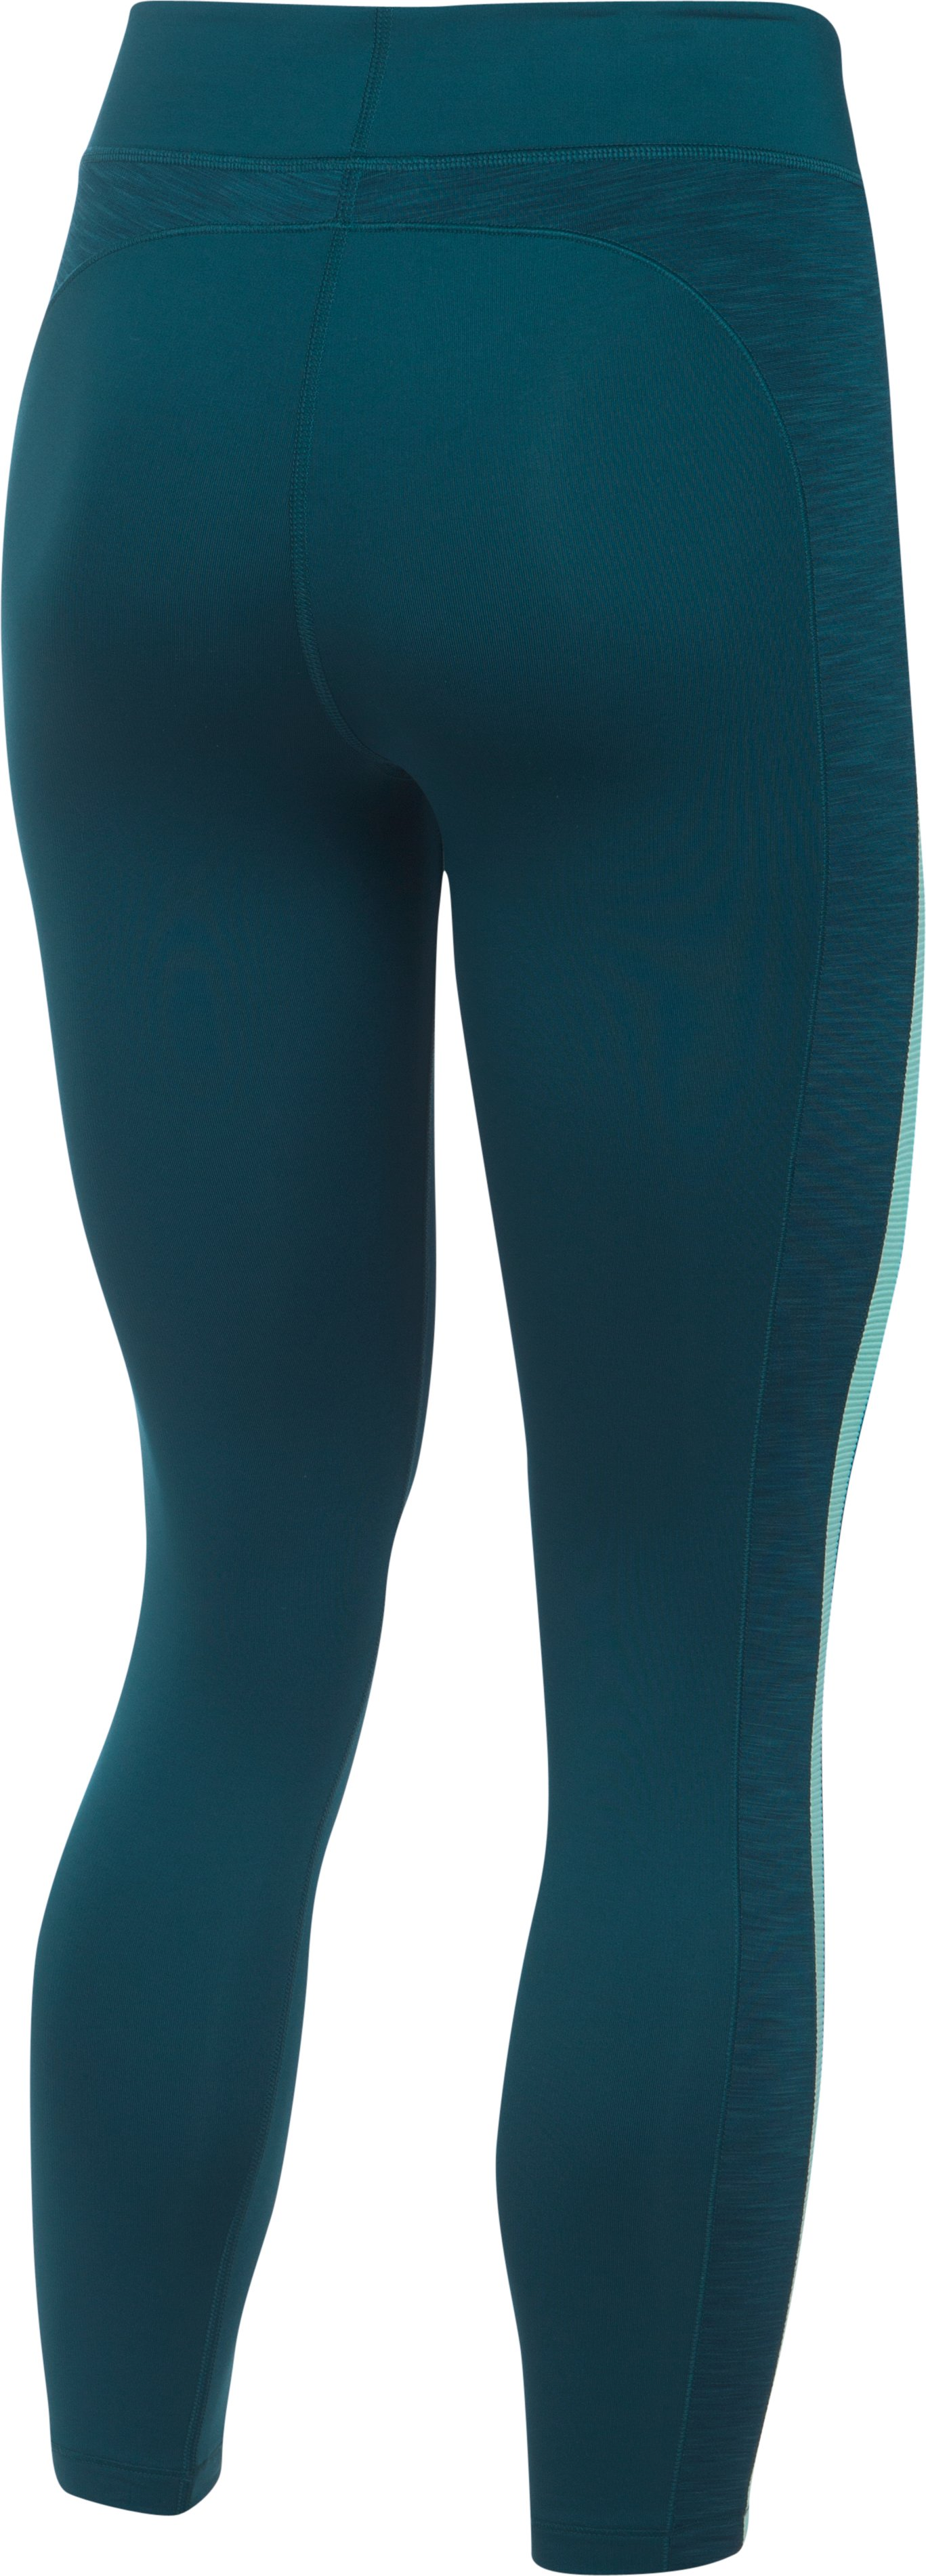 Women's UA ColdGear® 7/8 Leggings, NOVA TEAL,